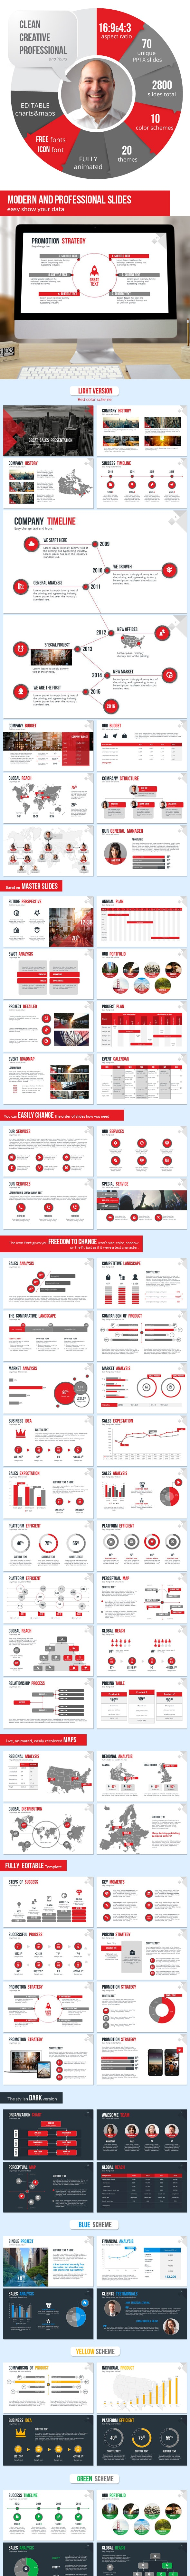 Sales PowerPoint Presentation Template - Business PowerPoint Templates